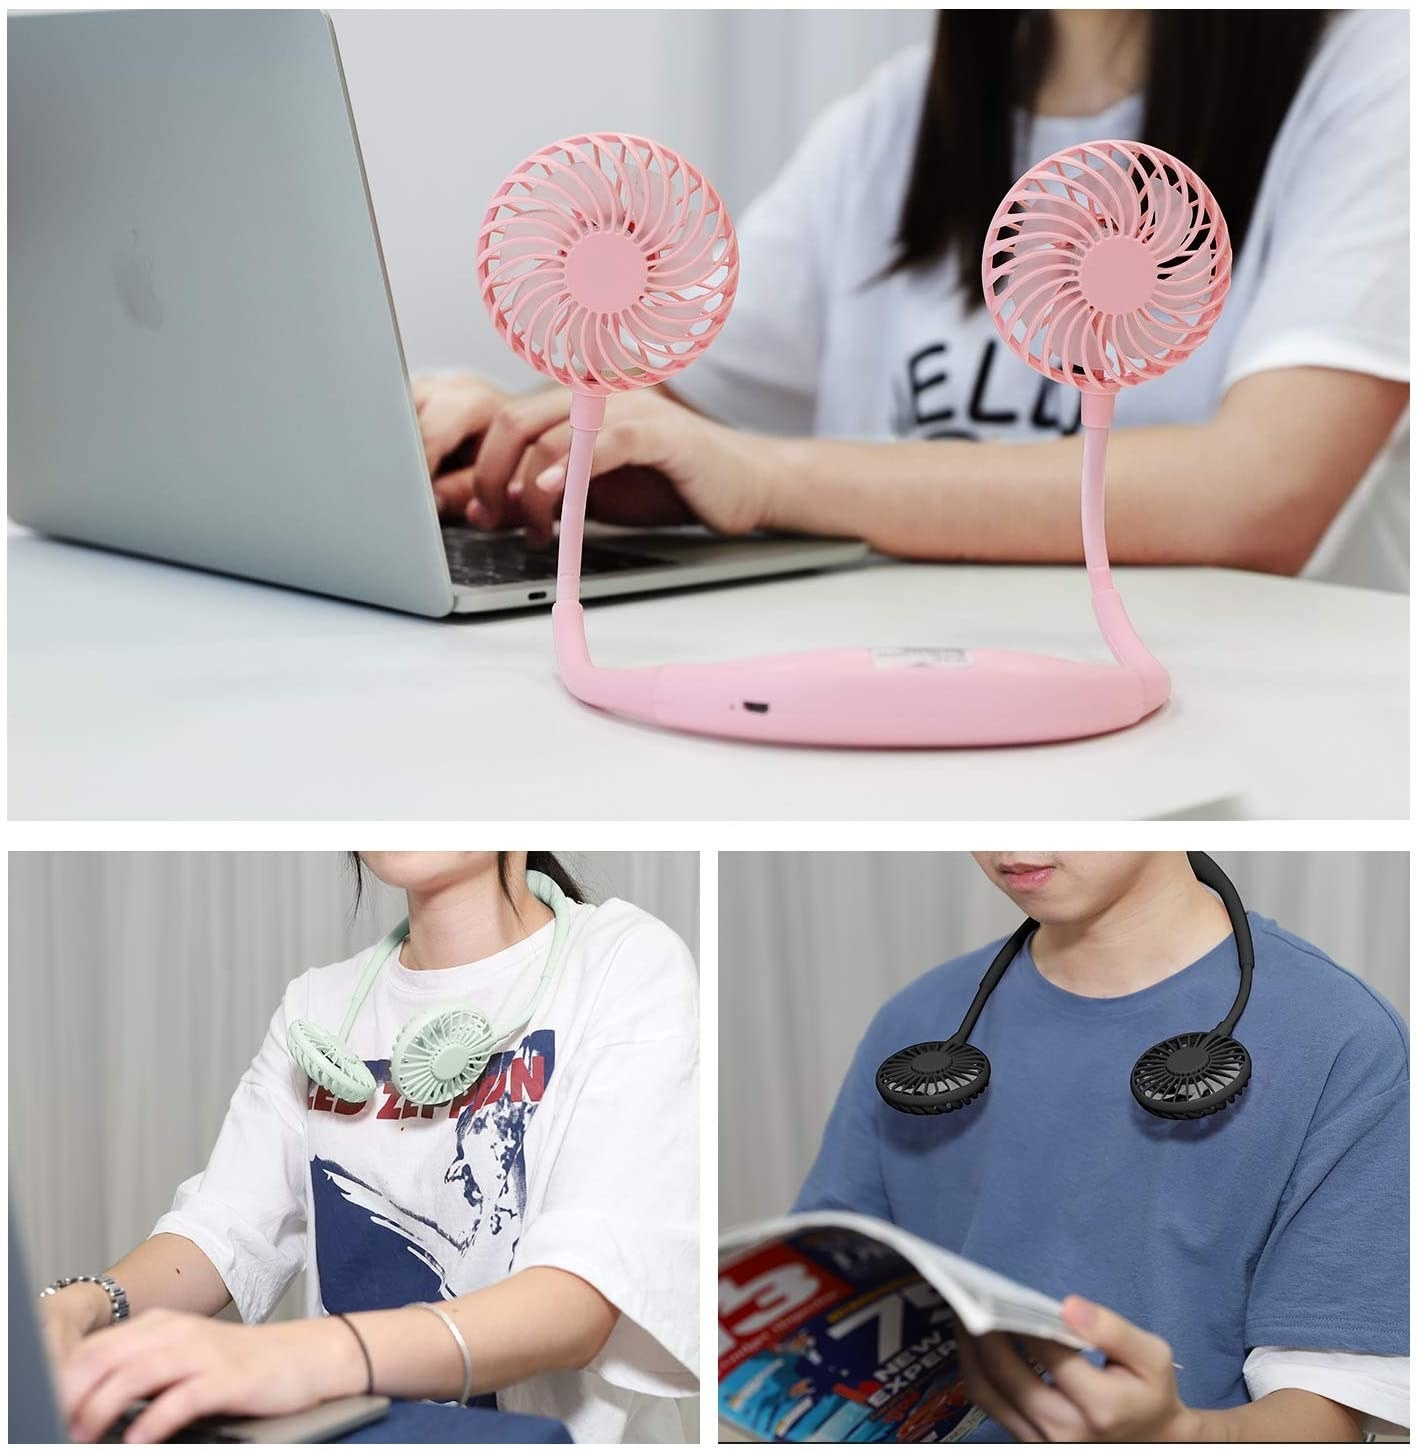 A person using the fan on their desk Another person wearing it around their neck